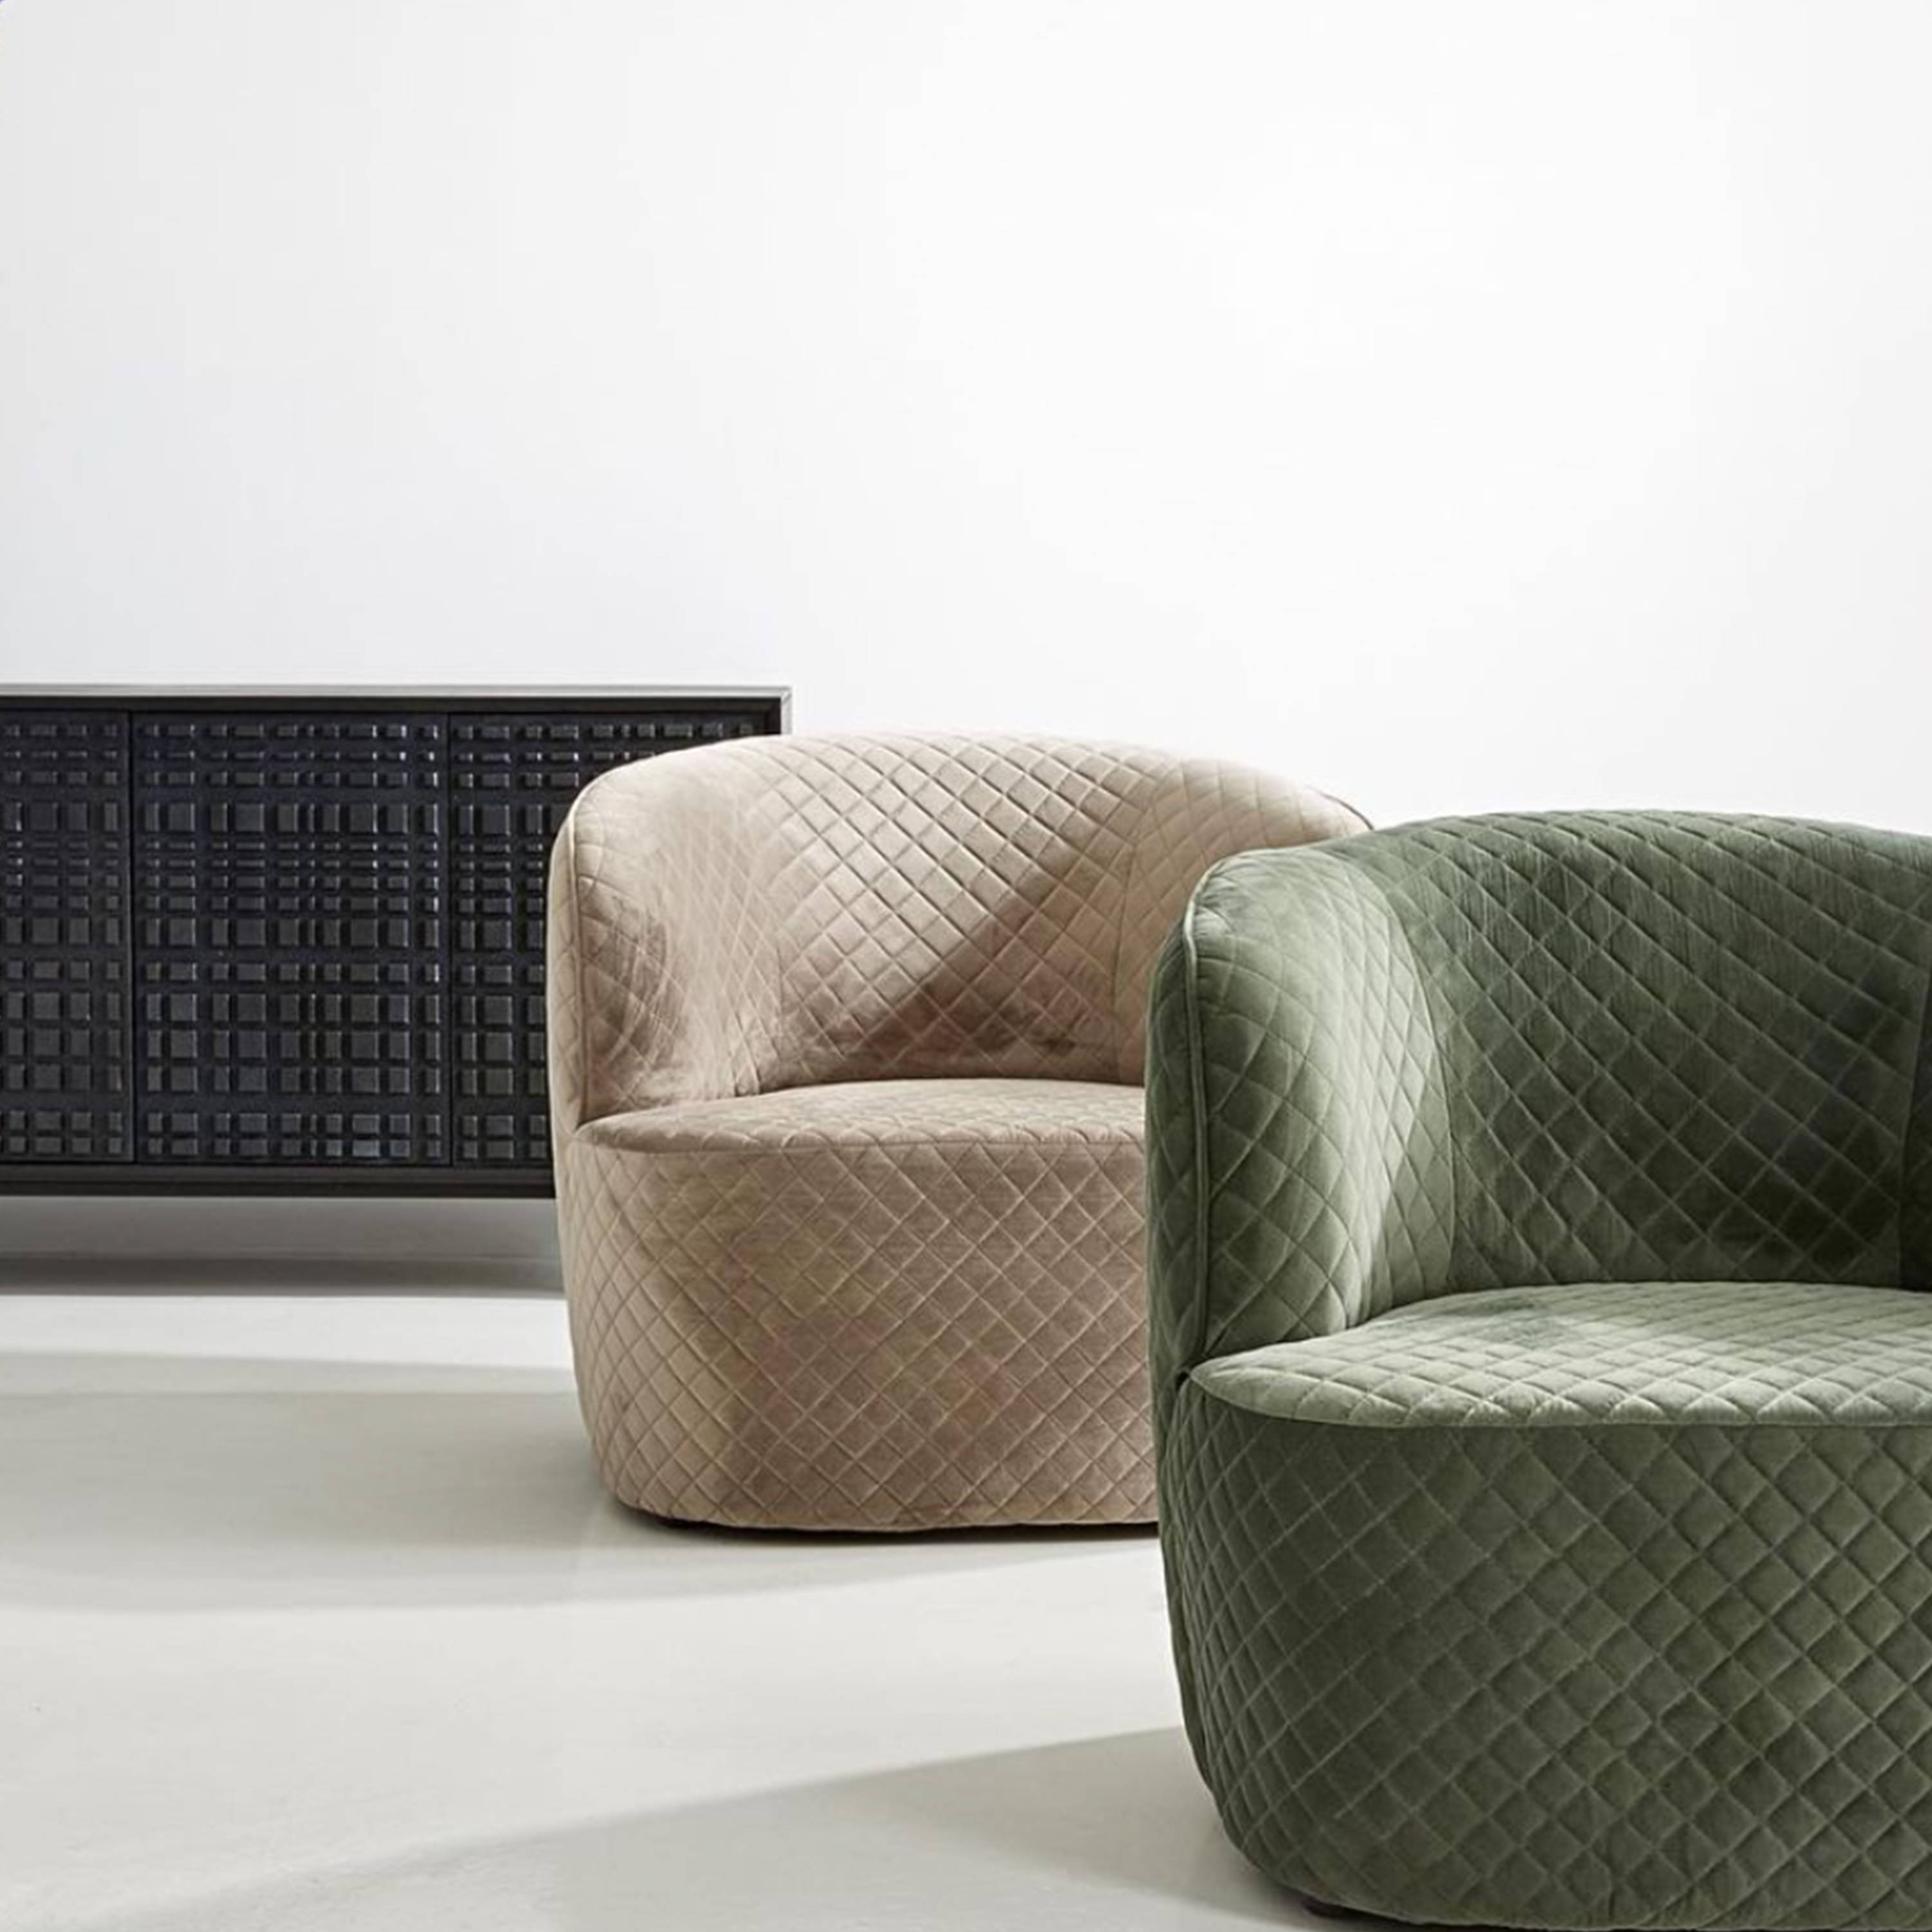 Occasional Chairs by Horgans - An image with two rounded armchairs in a neutral beige and an olive green